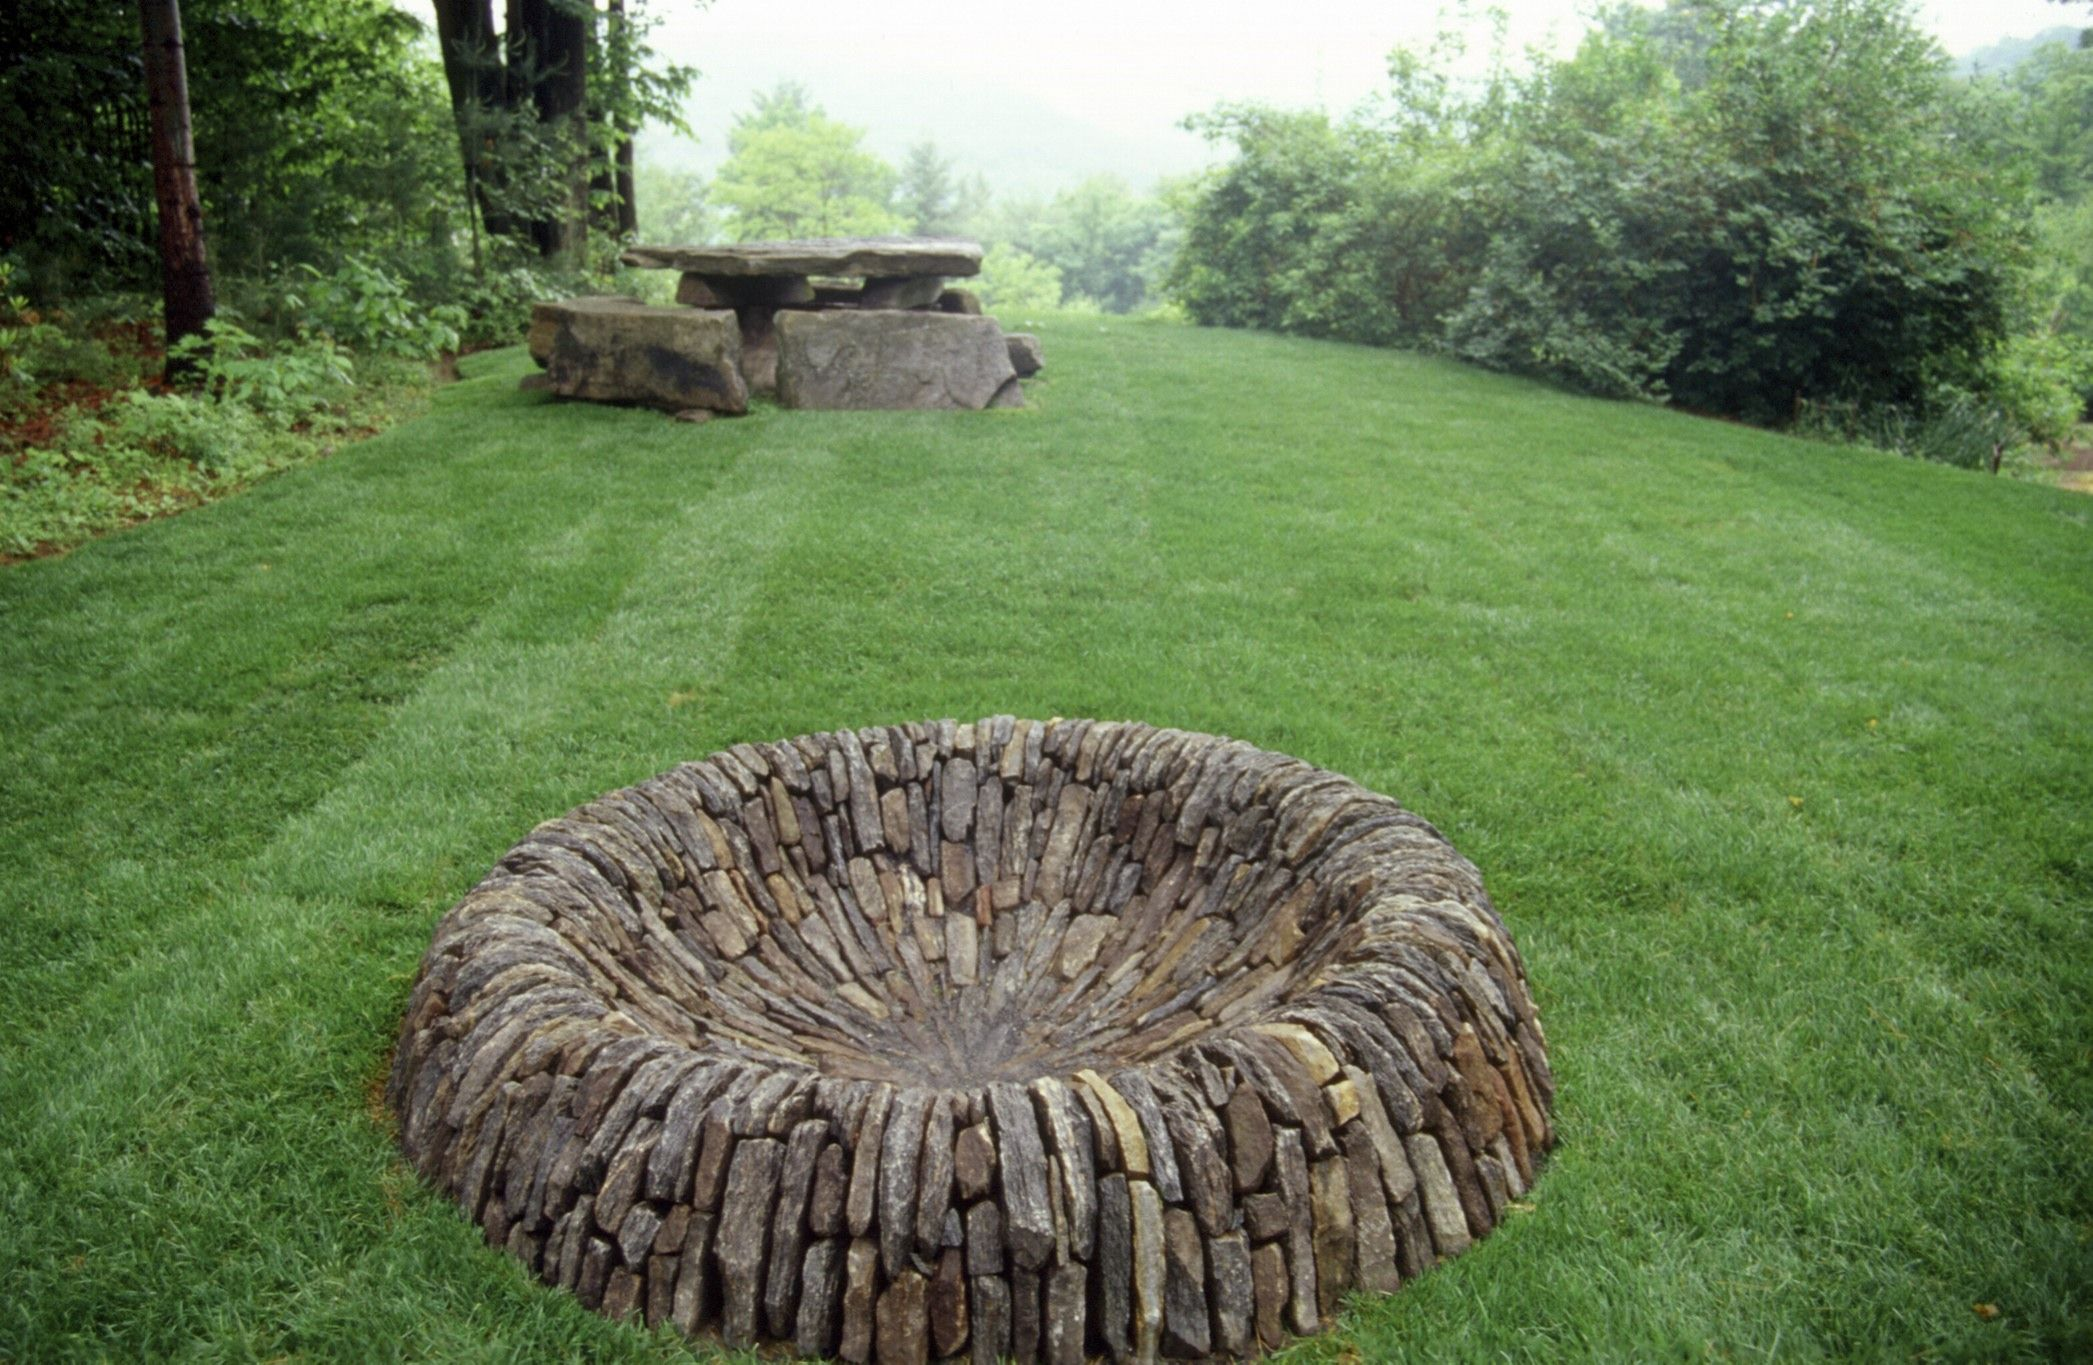 July 2013 Pinner 39 S Note I Just Love Dry Laid Stone Work Fire Ring By Dan Snow Of Dan Snow